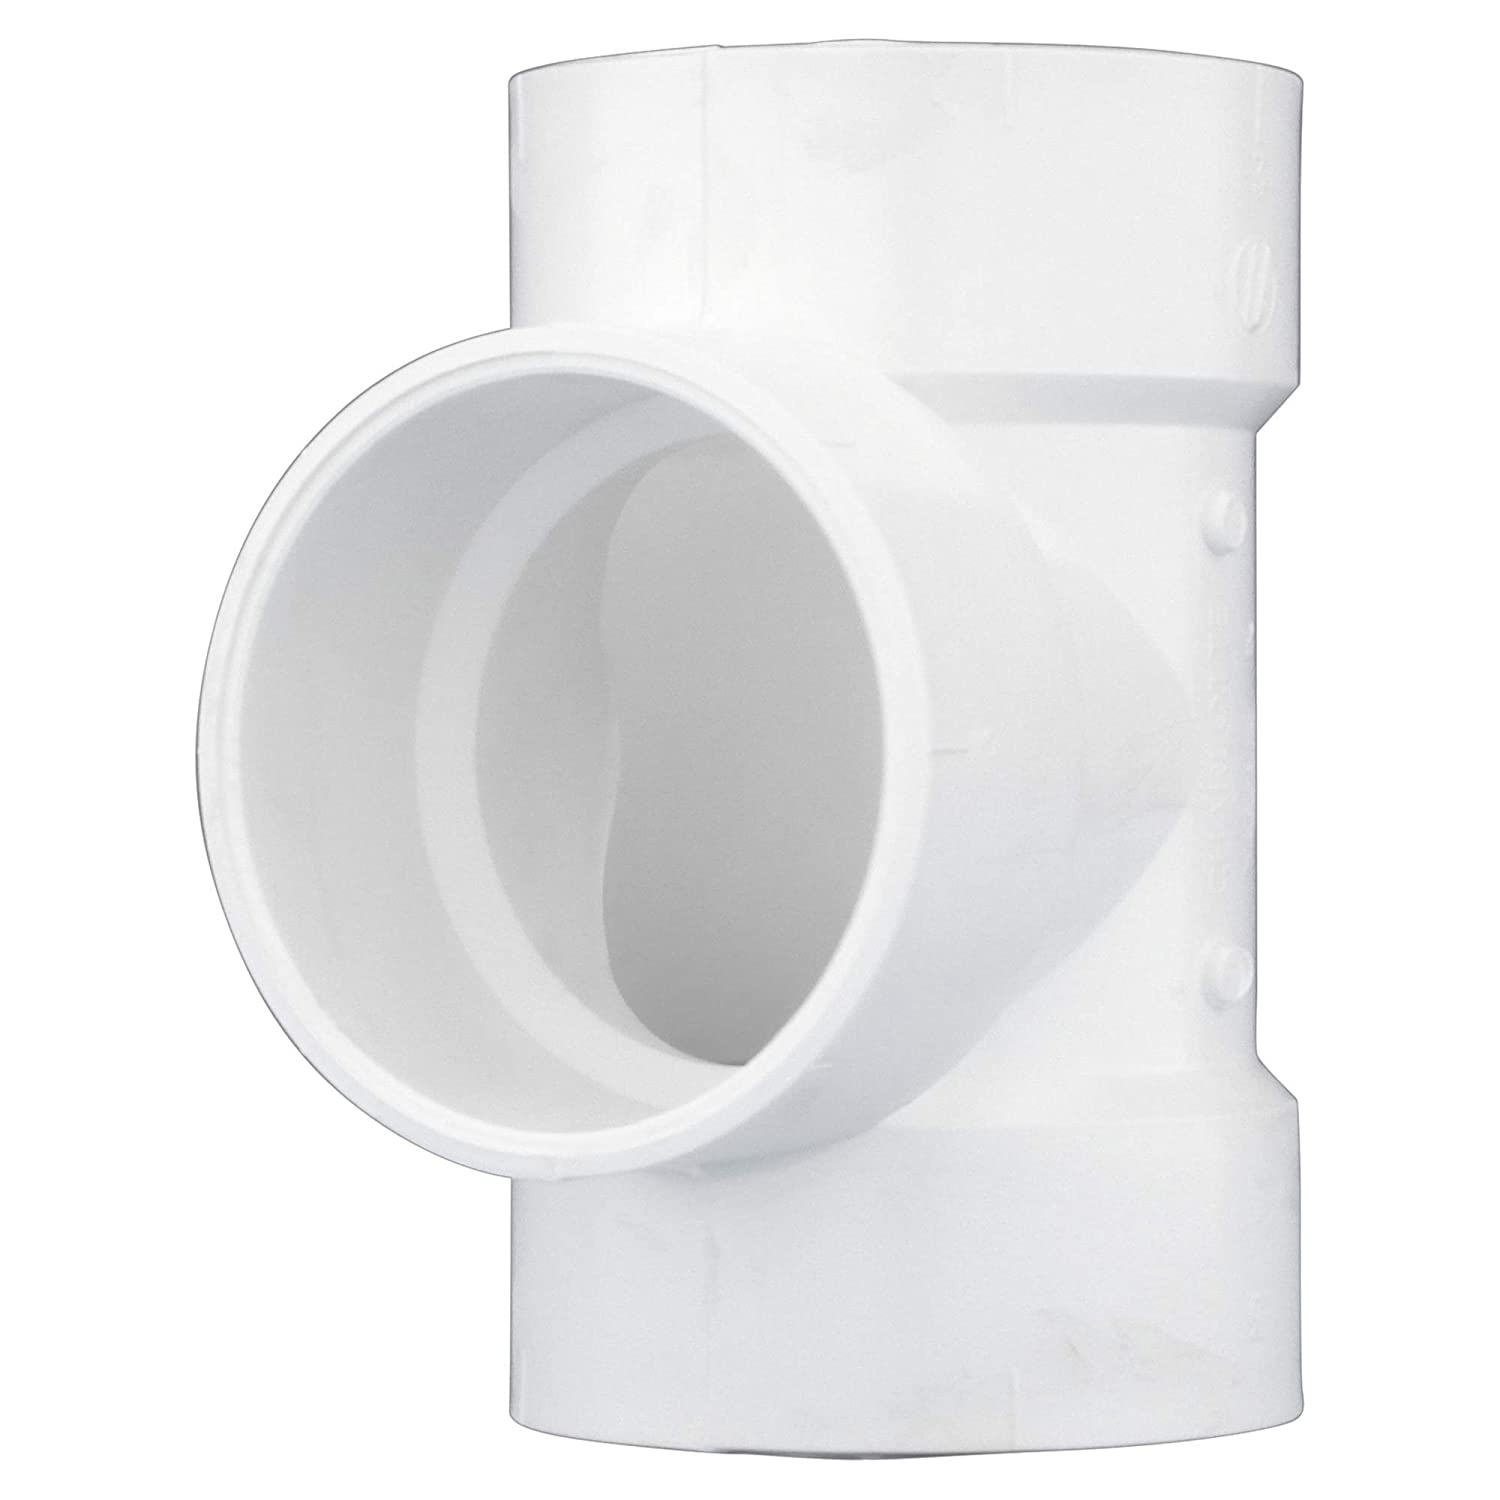 Schedule 40 PVC DWV Durable and High Tensile for Home or Industrial Use Drain, Waste and Vent Hub x Hub Charlotte Pipe 1-1//2 Vent Tee Pipe Fitting - Easy to Install 25 Unit Box